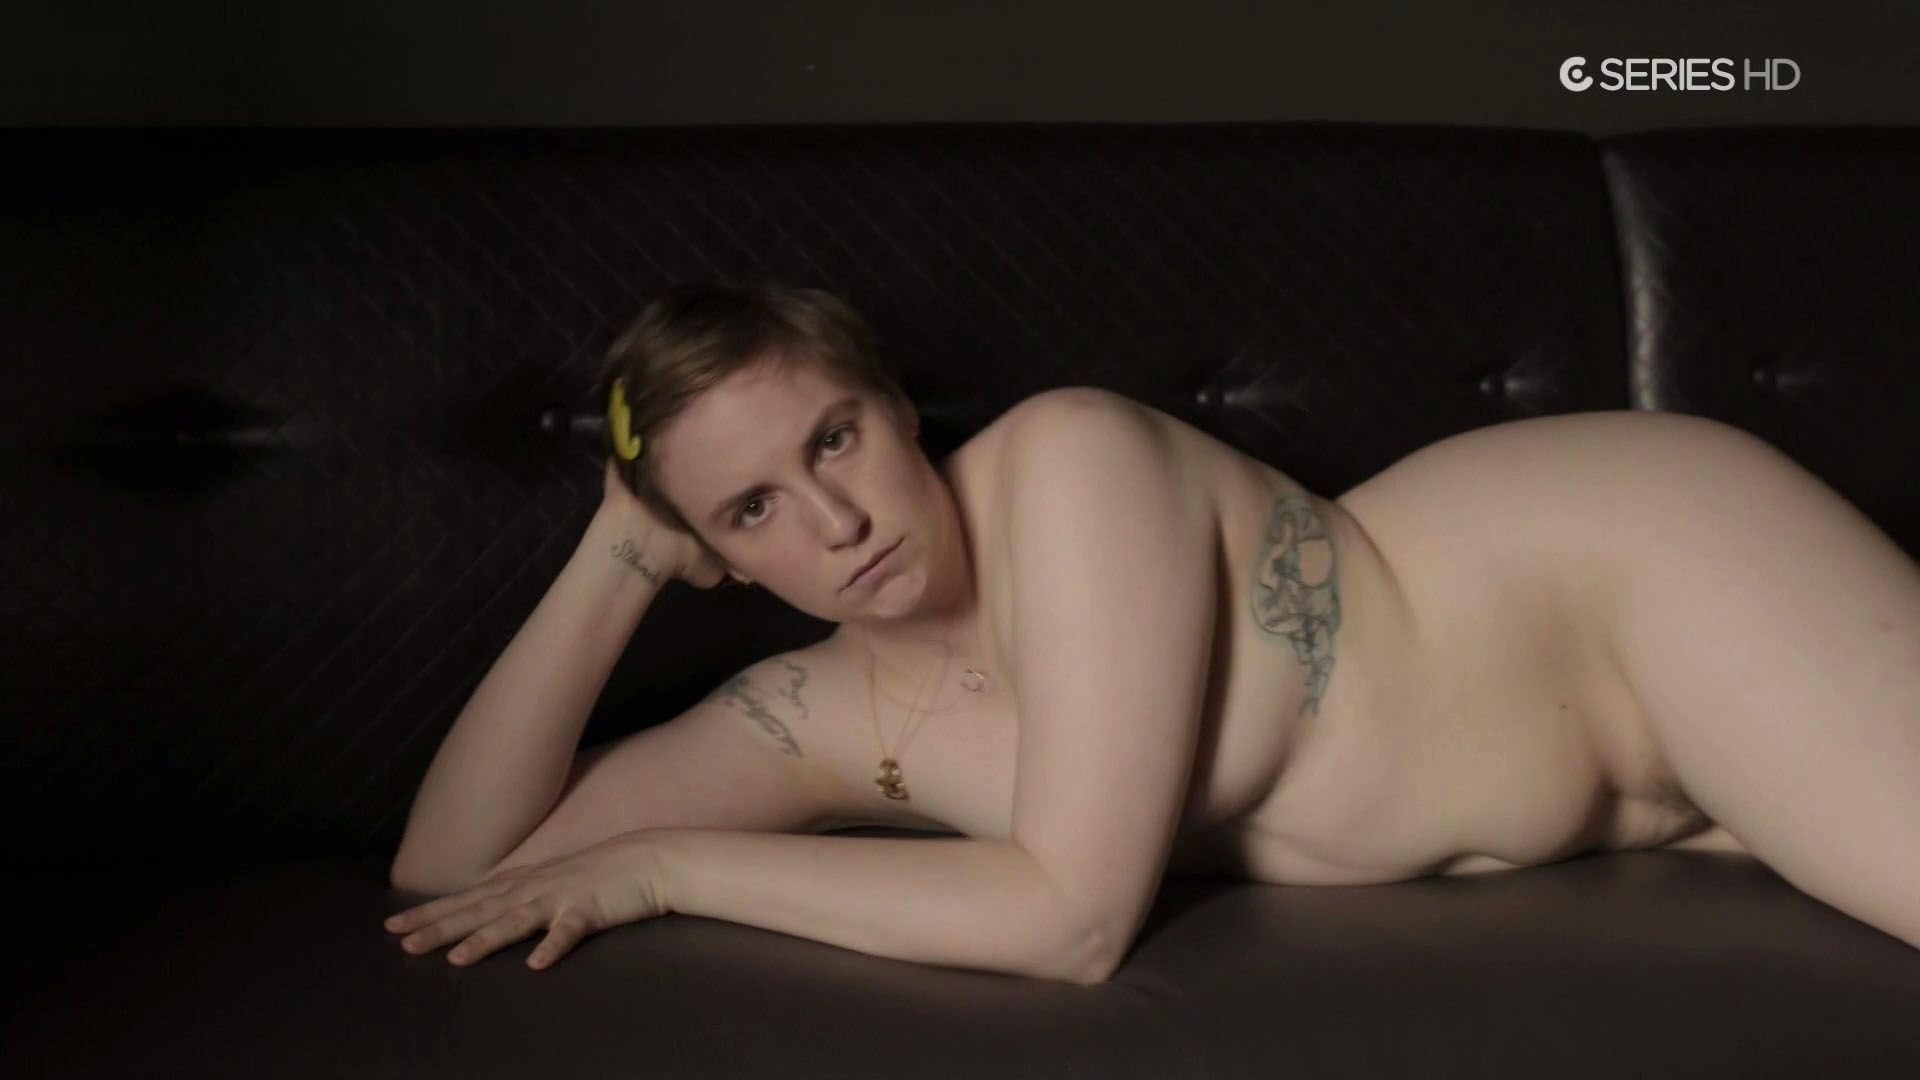 Lena dunham nude topless and sex in girls s03e10 3